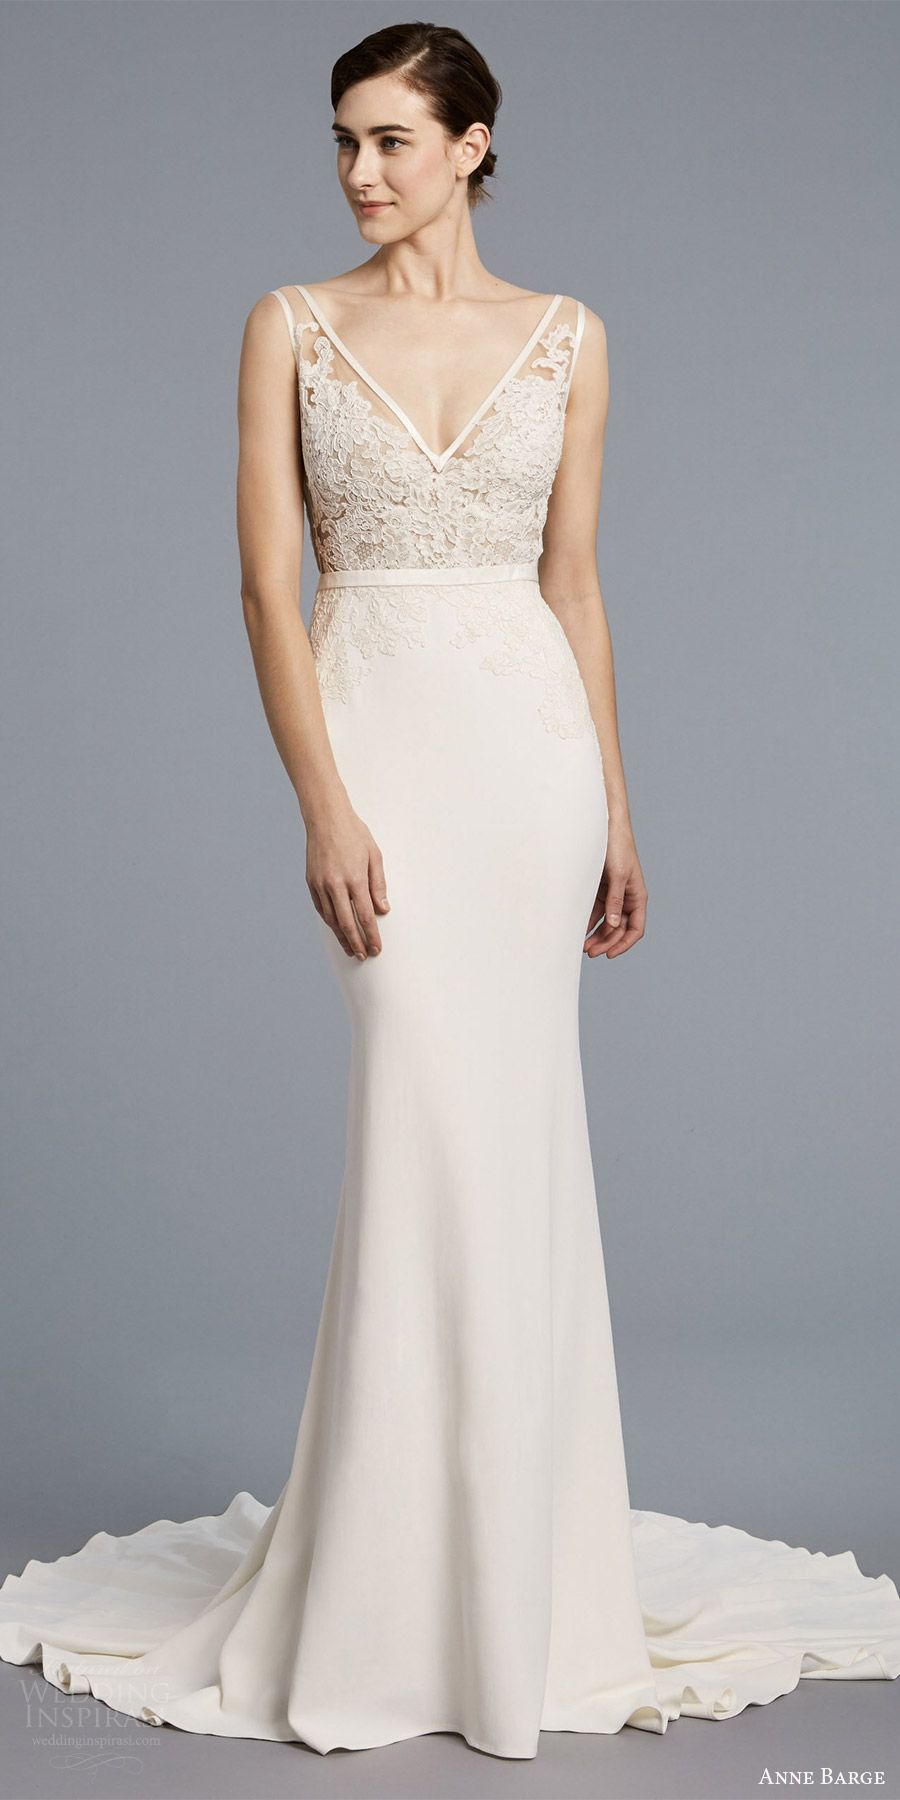 e23a4e9e18c3 anne barge spring 2018 bridal sleeveless illusion straps v neck sheer lace  bodice sheath wedding dress (angelica) mv -- Anne Barge Spring 2018 Wedding  ...